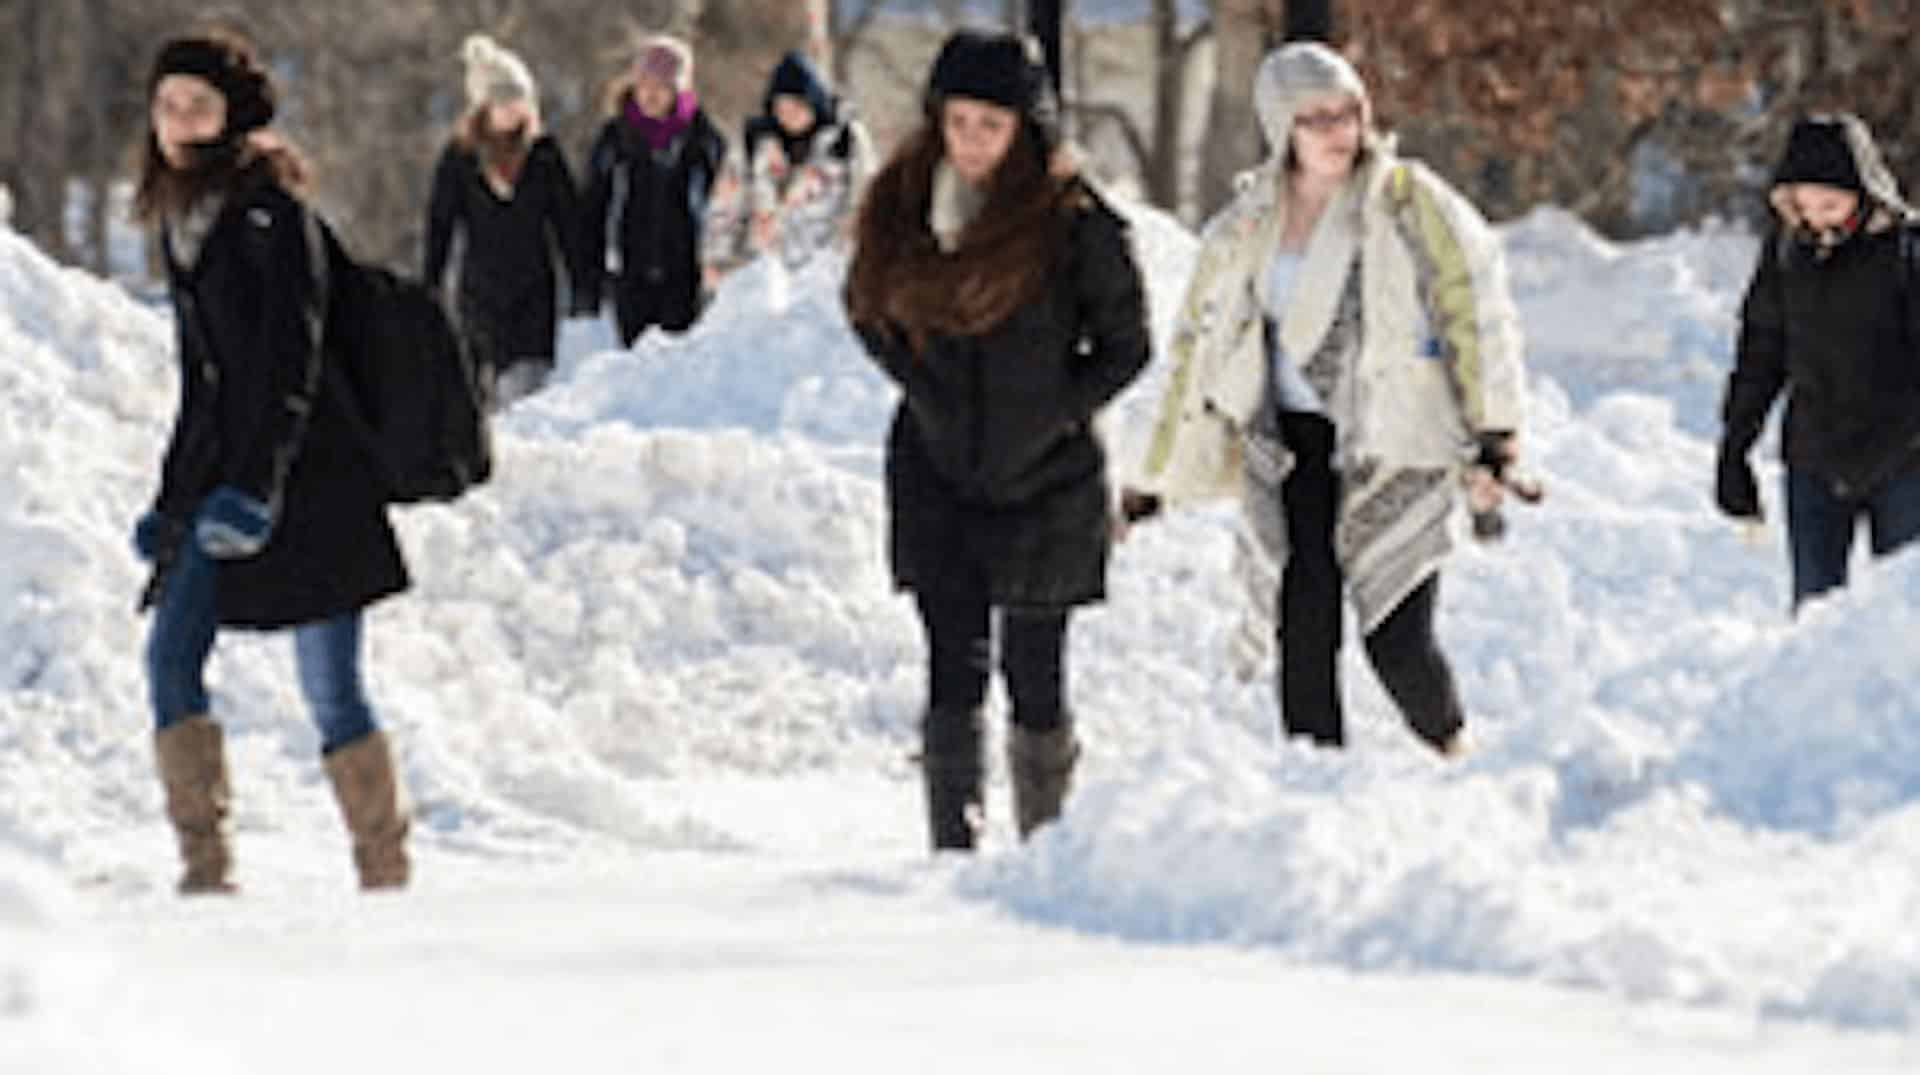 Students in winter coats walking through the snow to class.